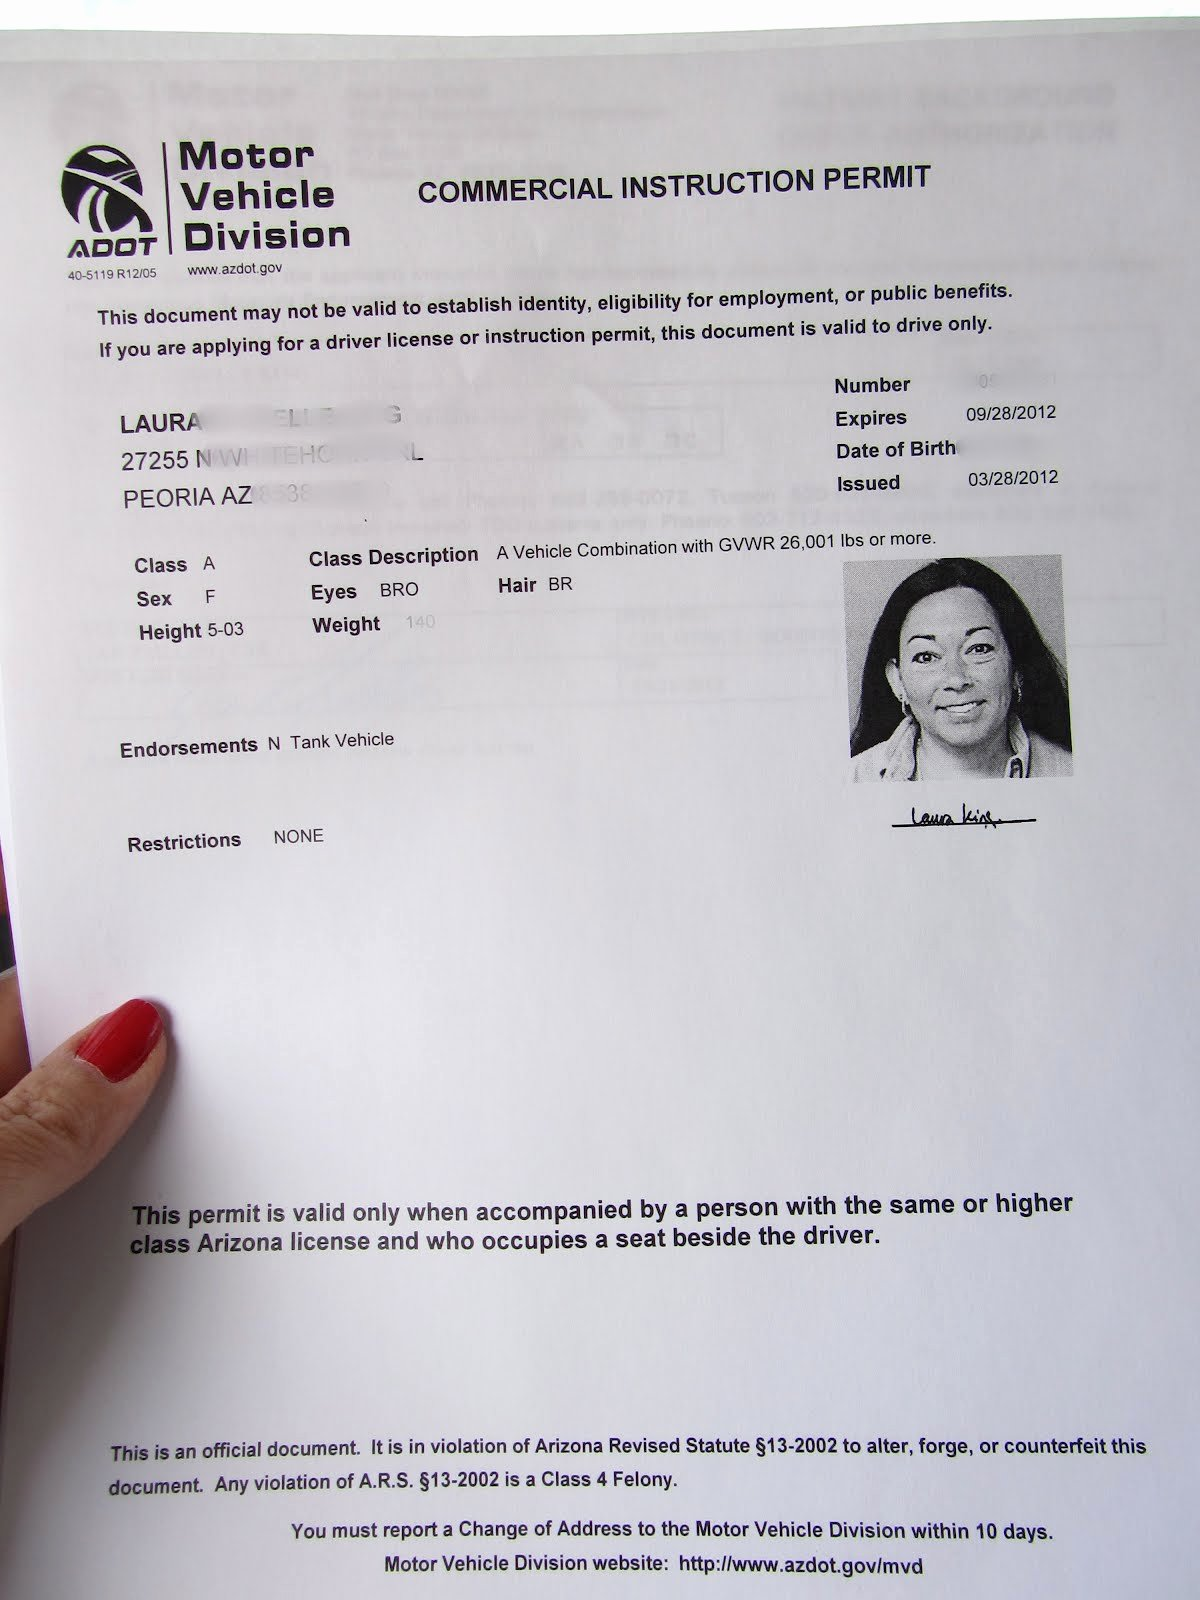 Failed Background Check Letter Best Of Hundewanderer My Journey to My Cdl